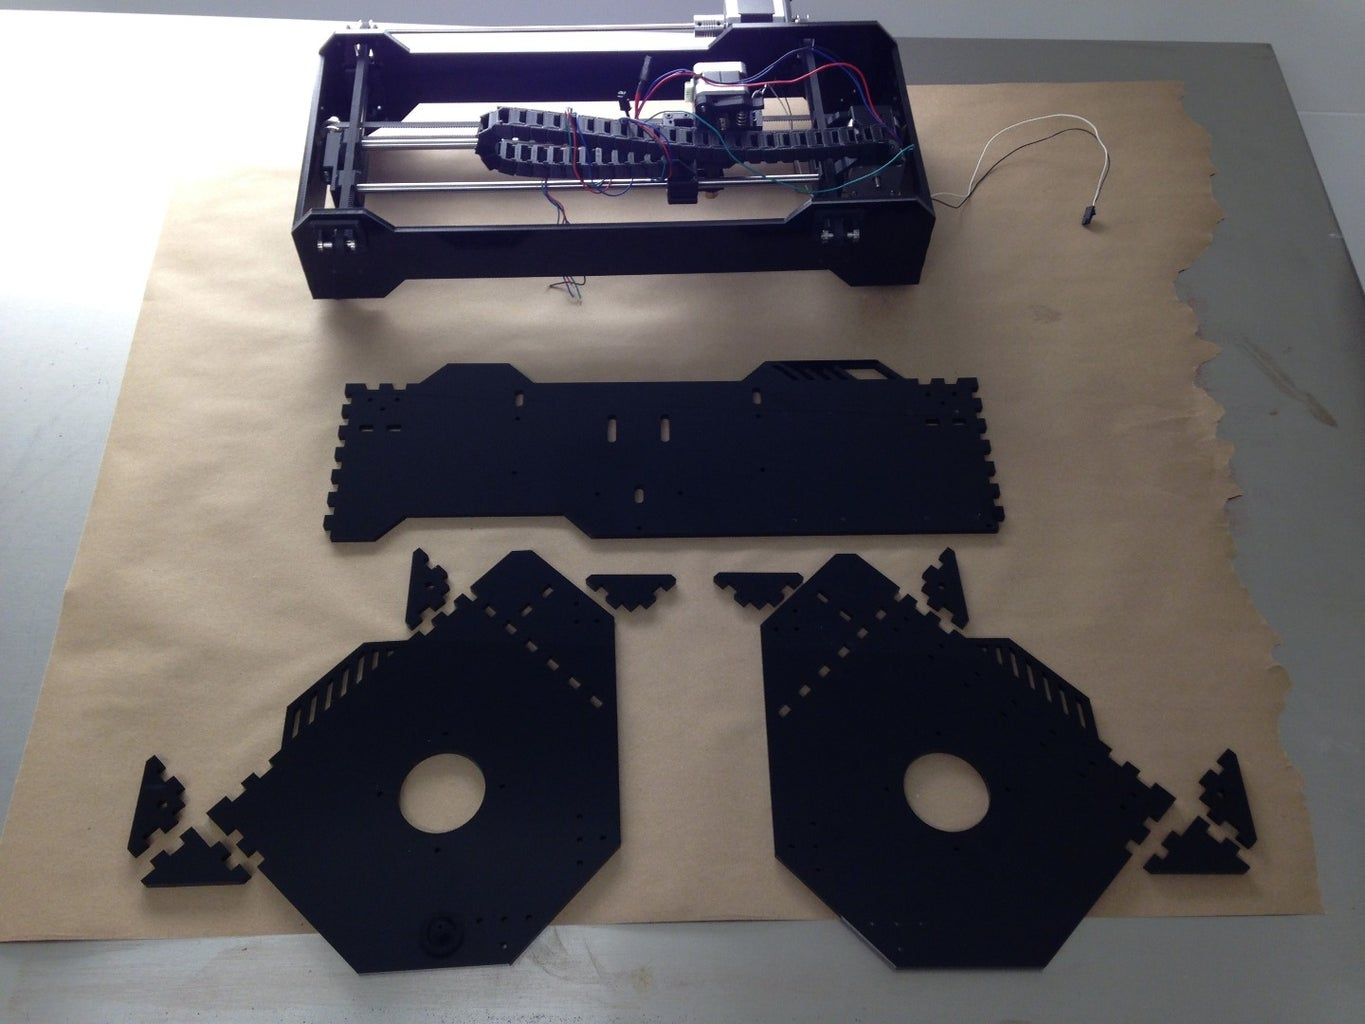 Laser Cut and Assemble the Lower Frame